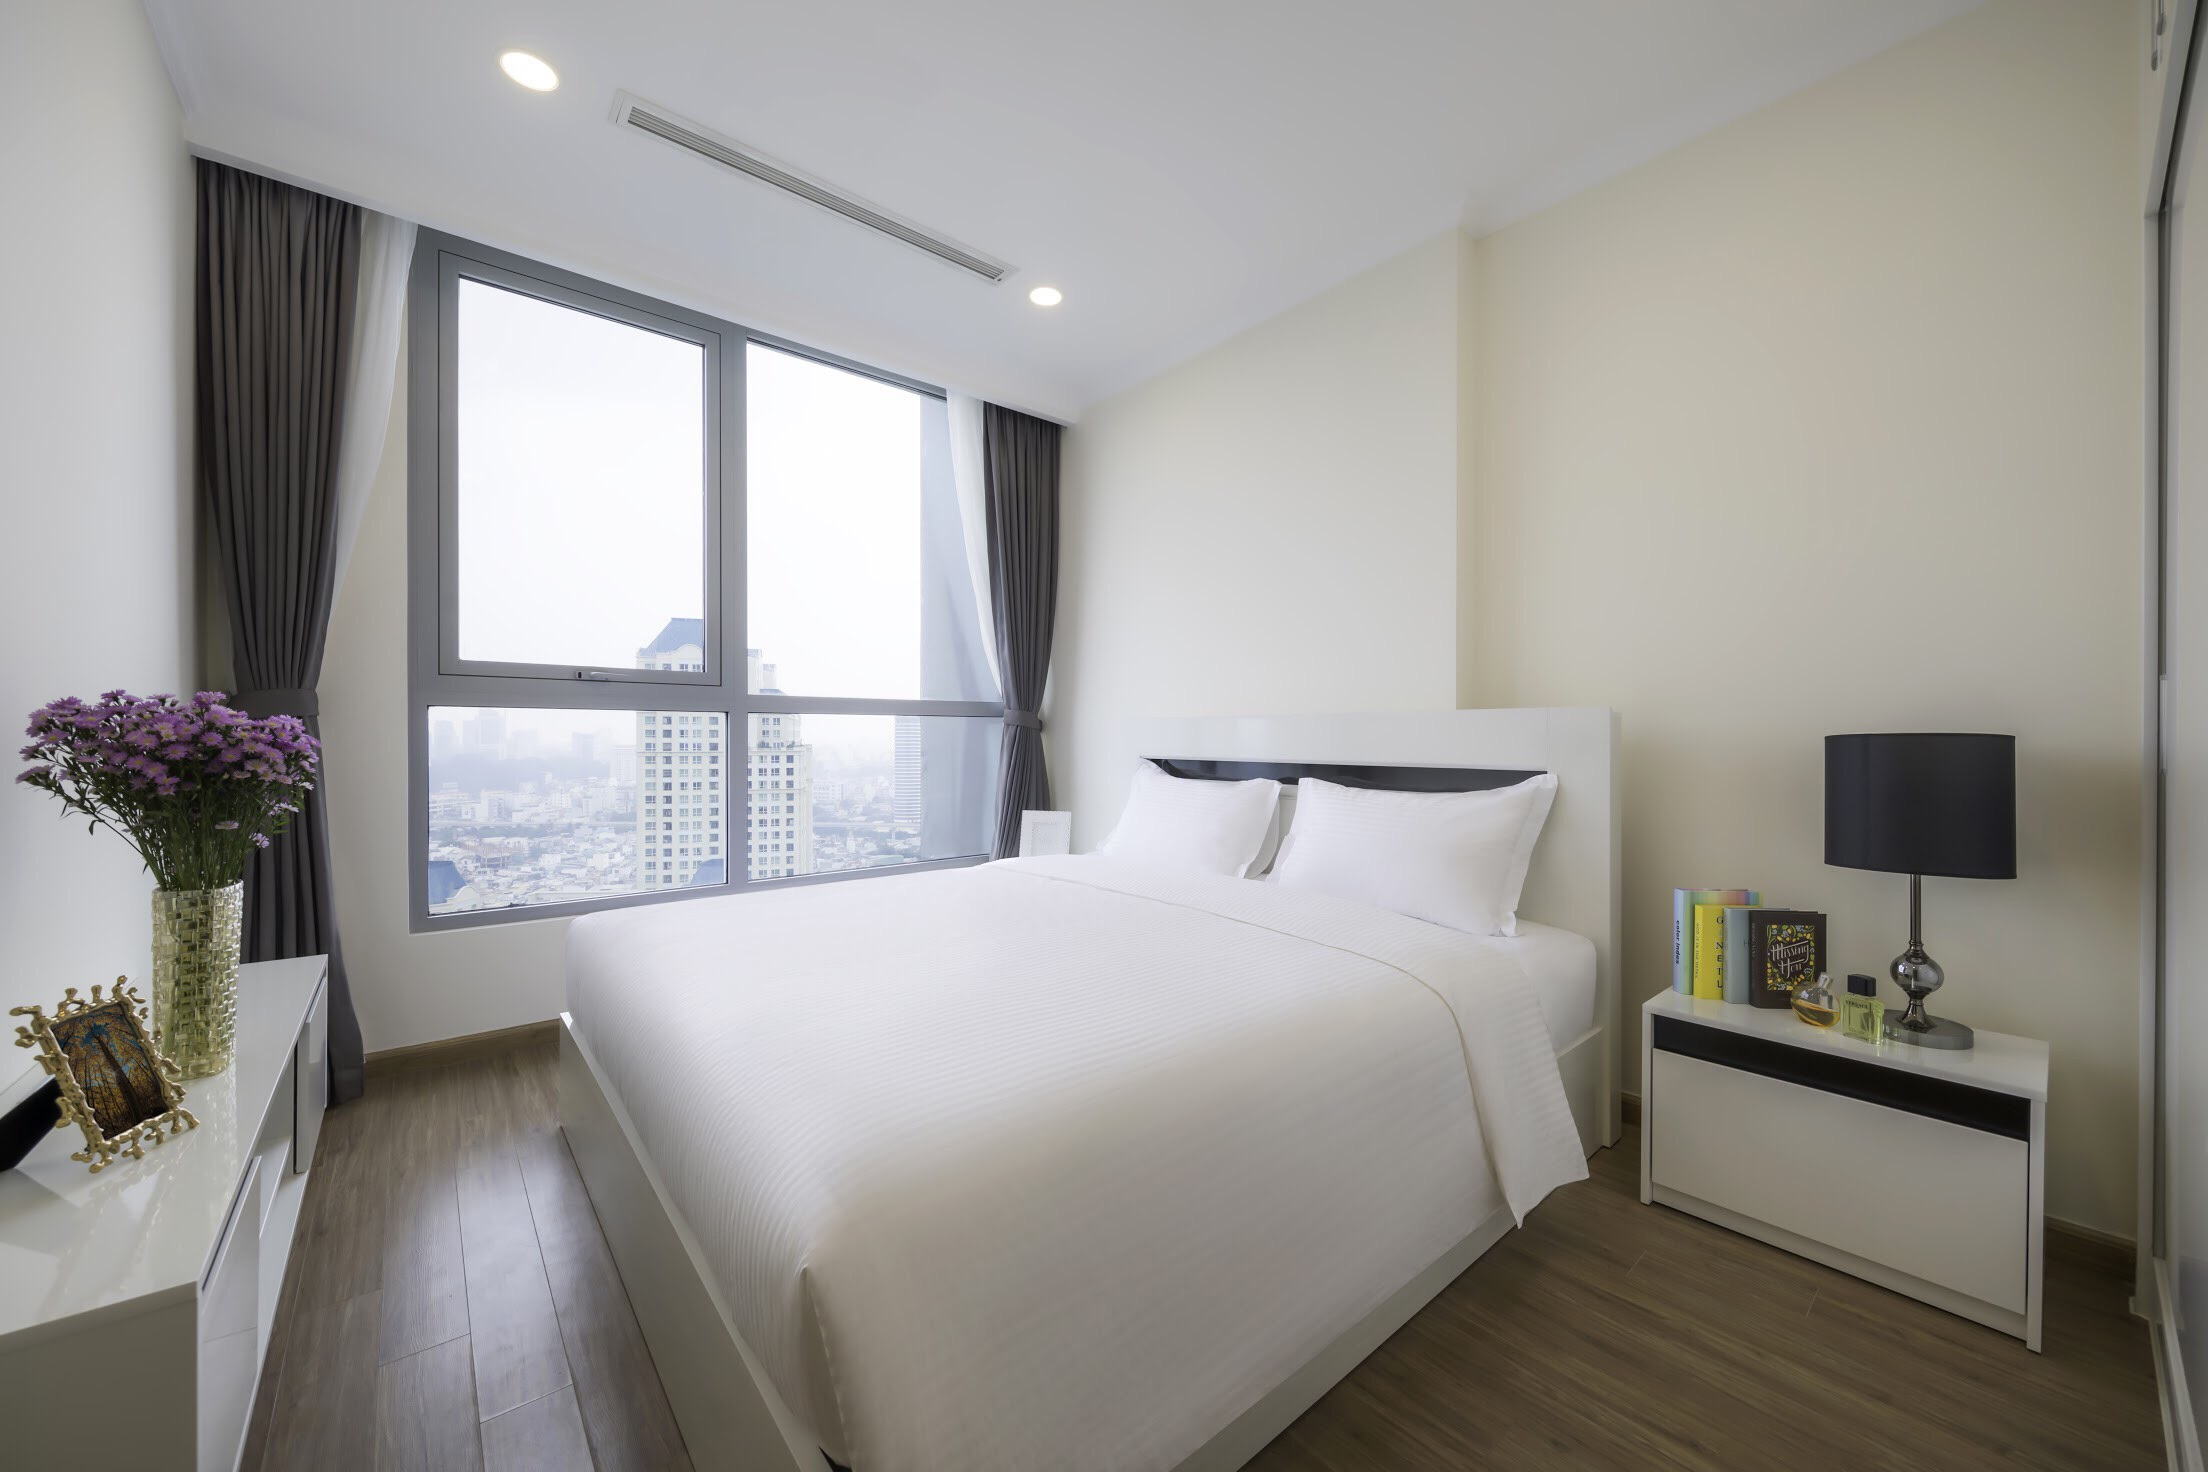 vinhomes central park apartment for rent in binh thanh district hcmc BT105L533 (2)